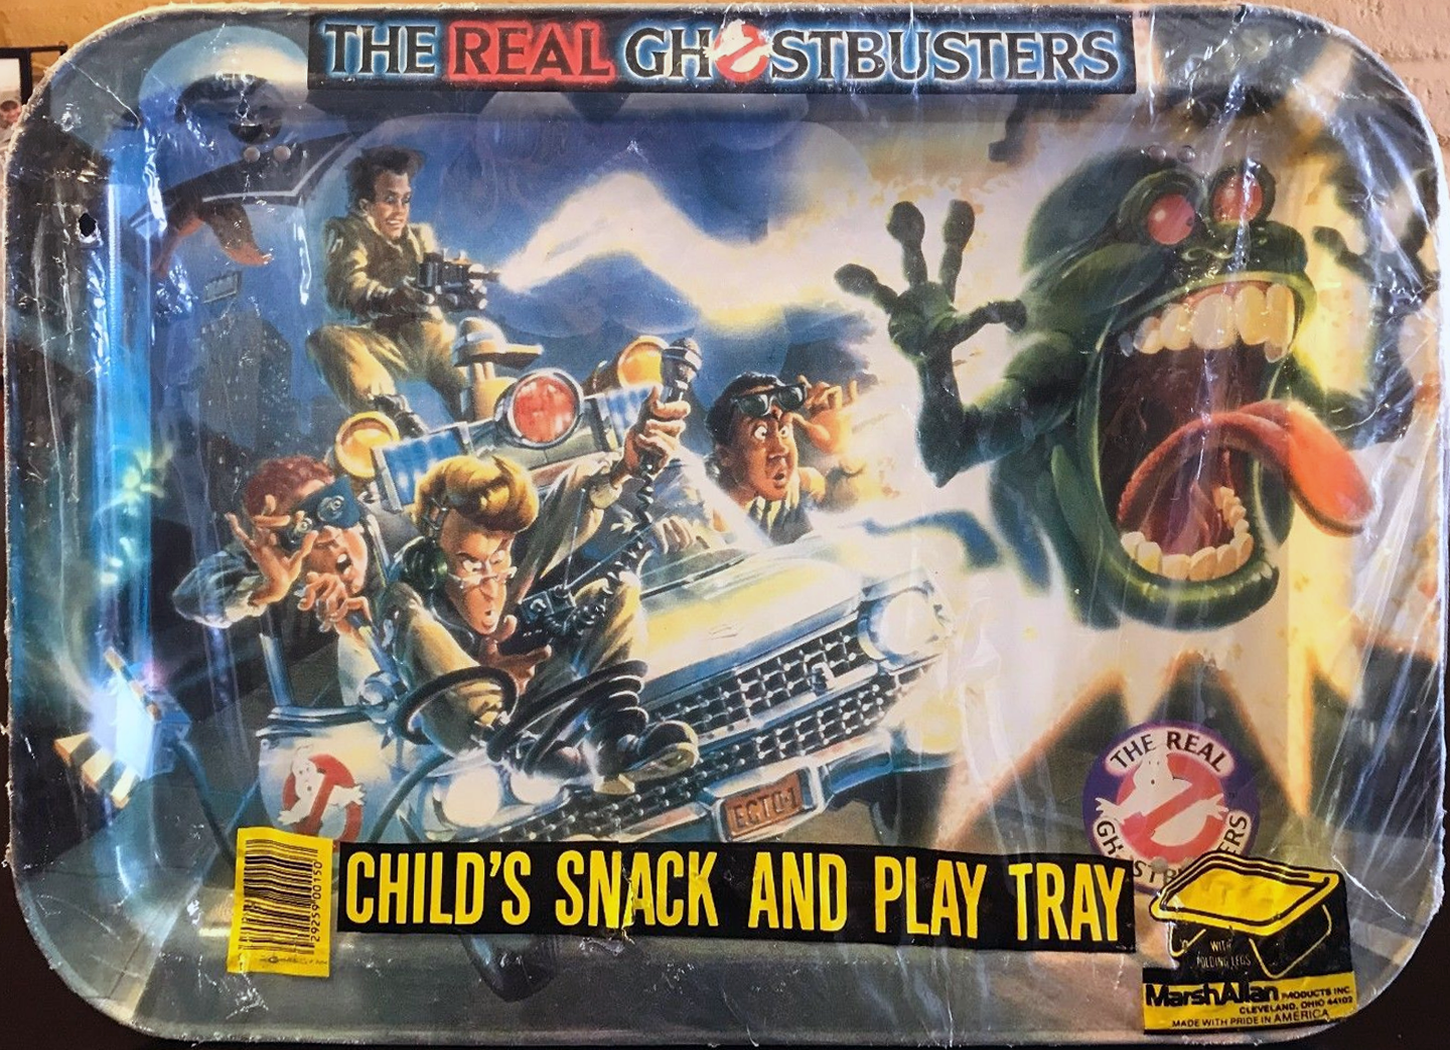 The Real Ghostbusters: Child's Snack And Play Tray